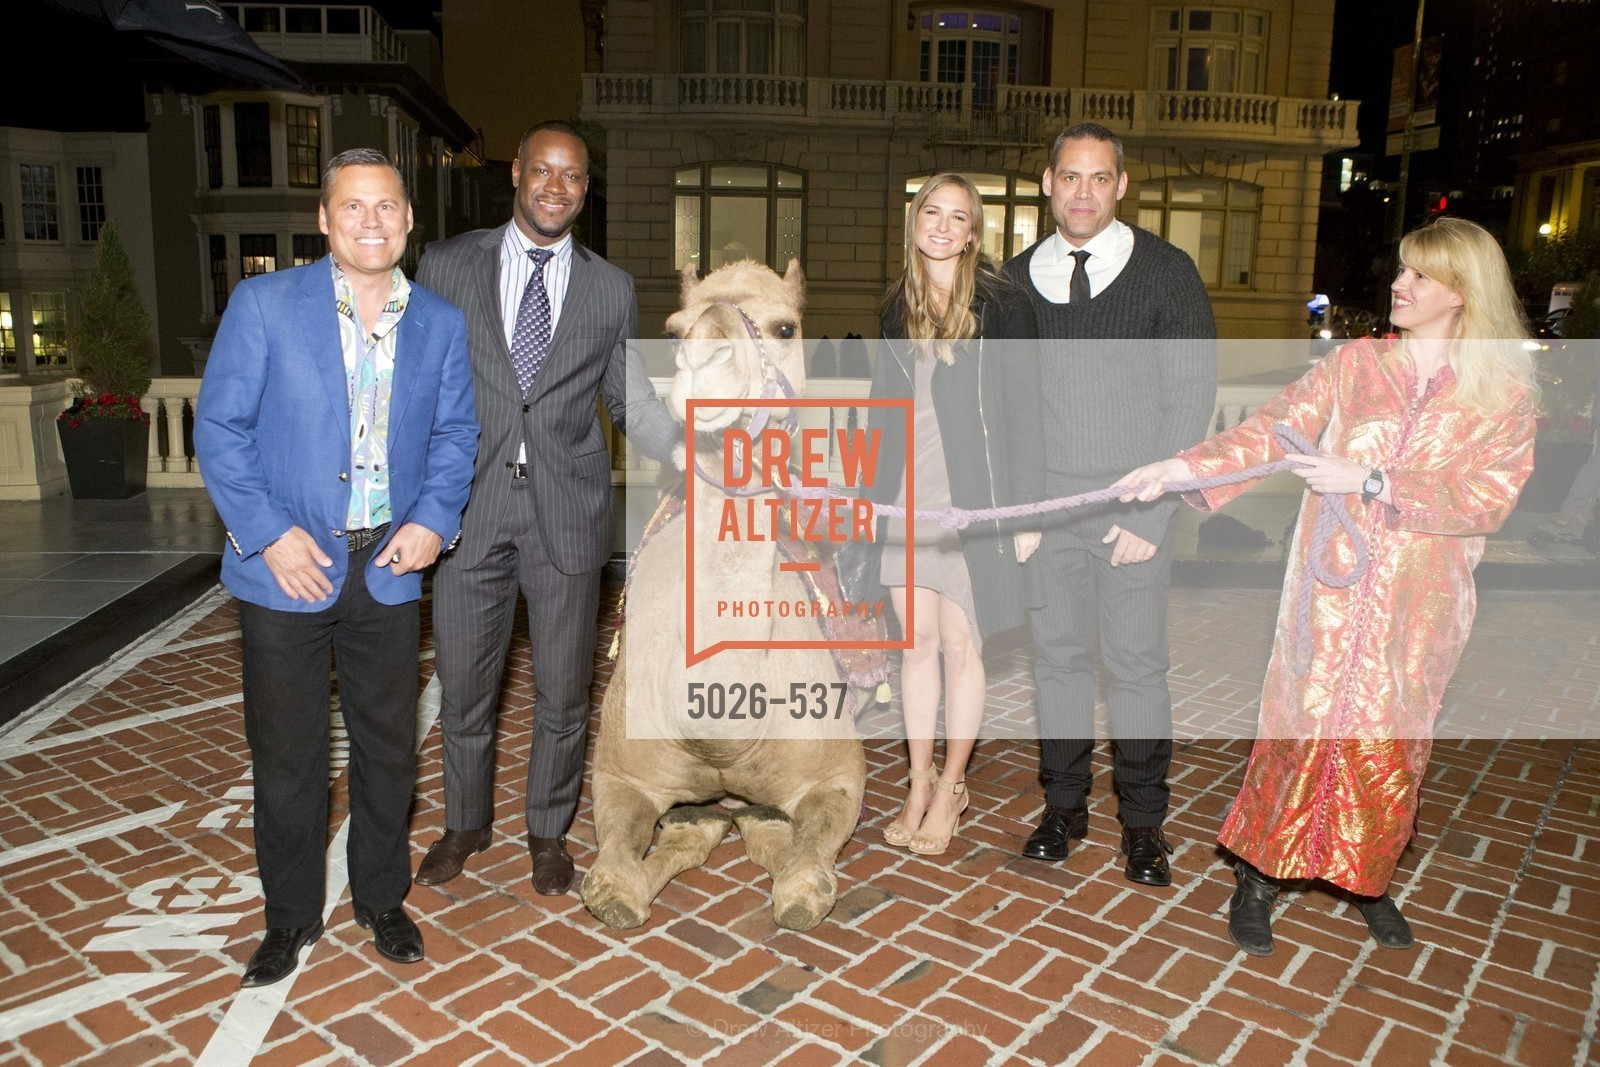 Mark Calvano, Roderick Harris, Cristina Murphy, John Calvano, TOP OF THE MARK'S 75TH Anniversary Party, US, November 6th, 2014,Drew Altizer, Drew Altizer Photography, full-service agency, private events, San Francisco photographer, photographer california